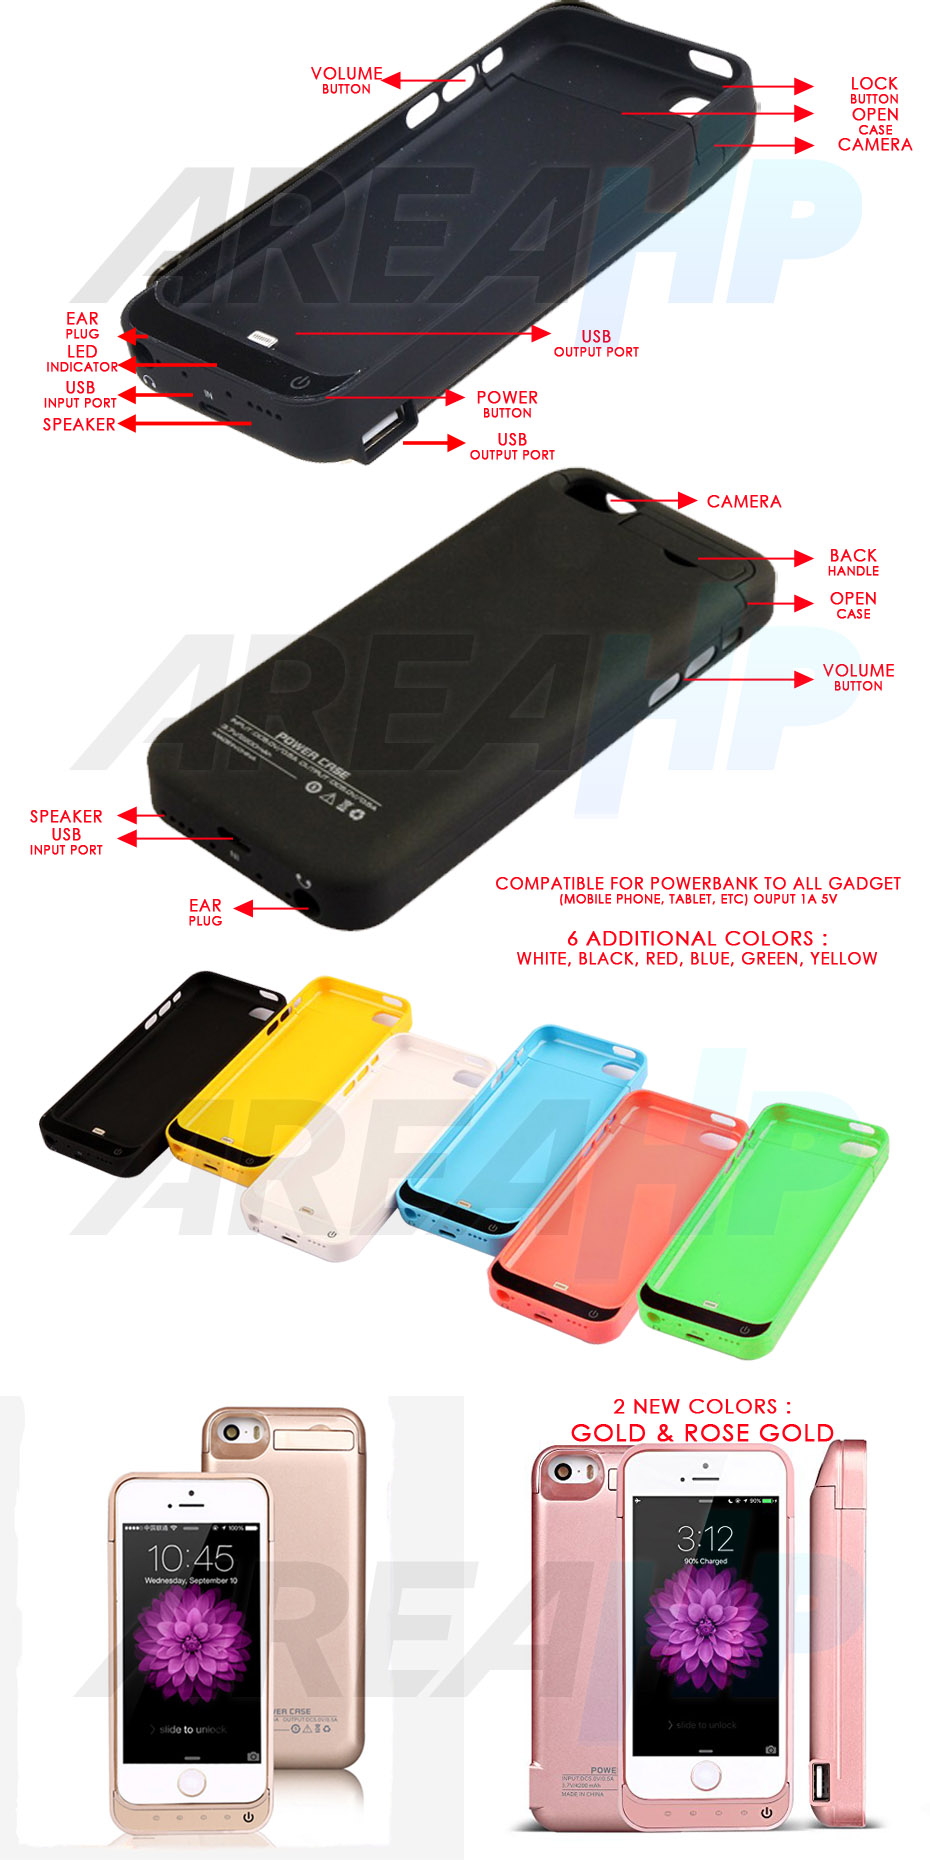 Power Case 4200mAh For iPhone 5, 5C, 5S, SE Overview